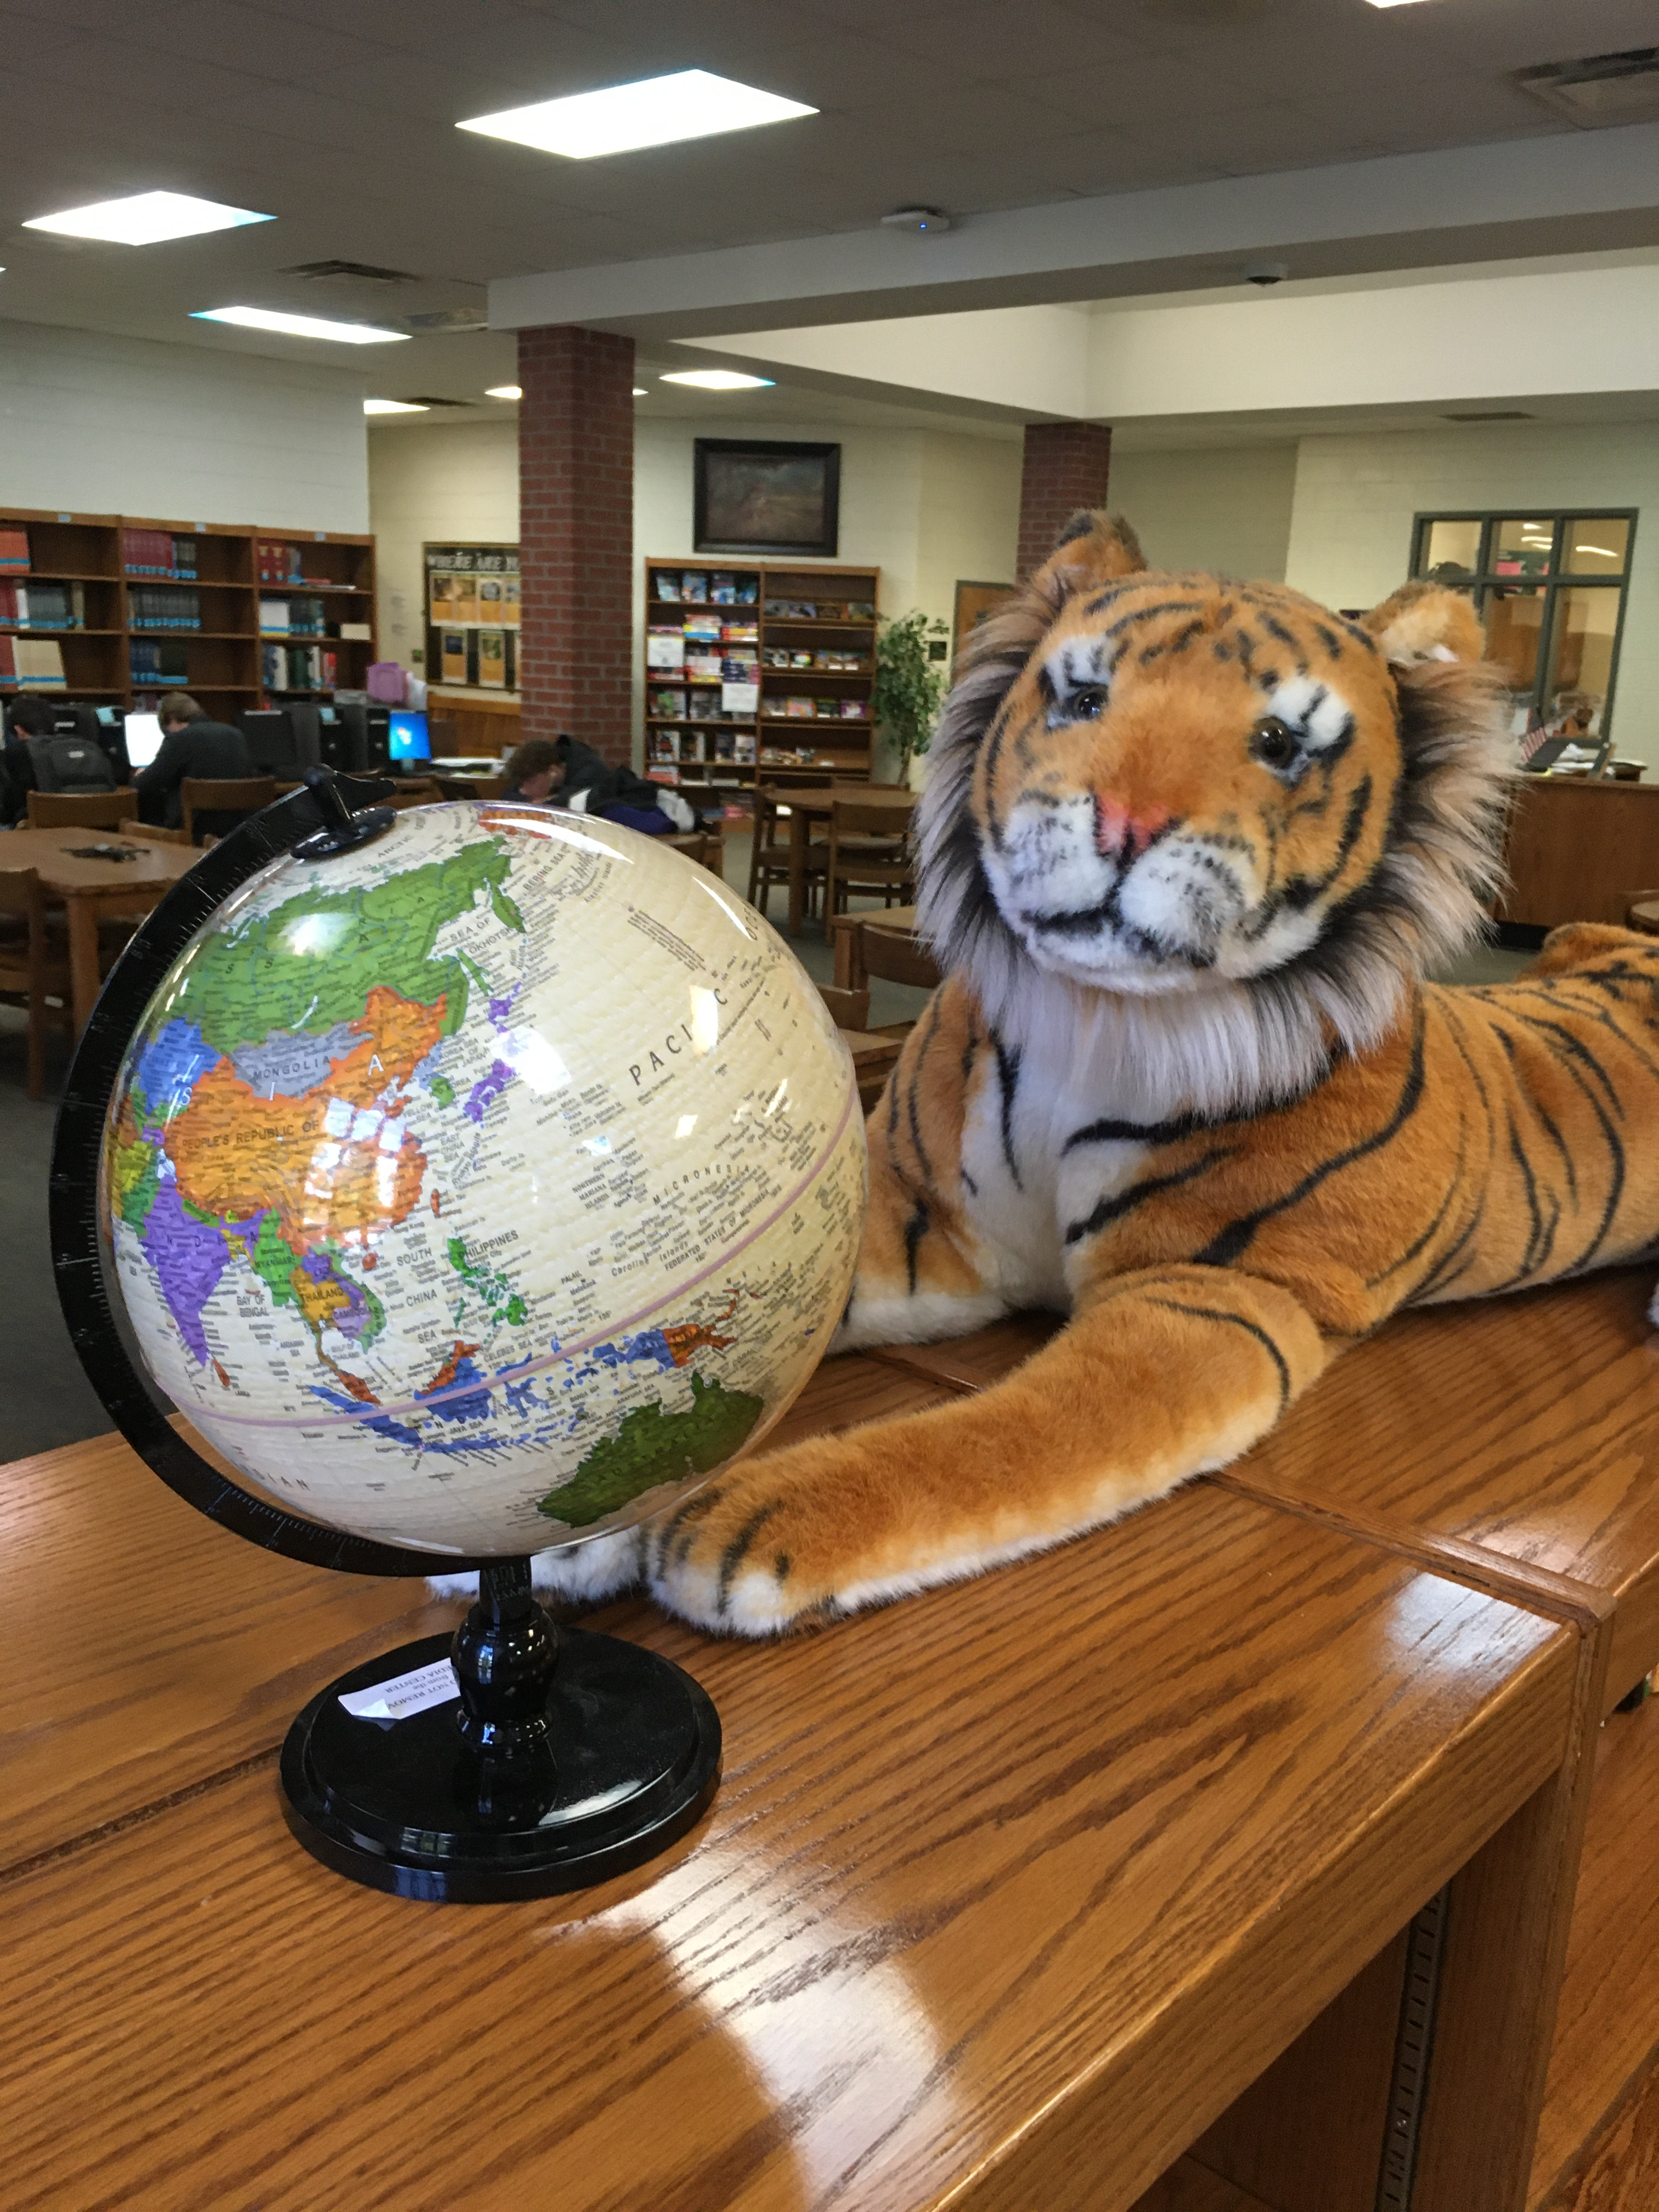 Tiger with globe